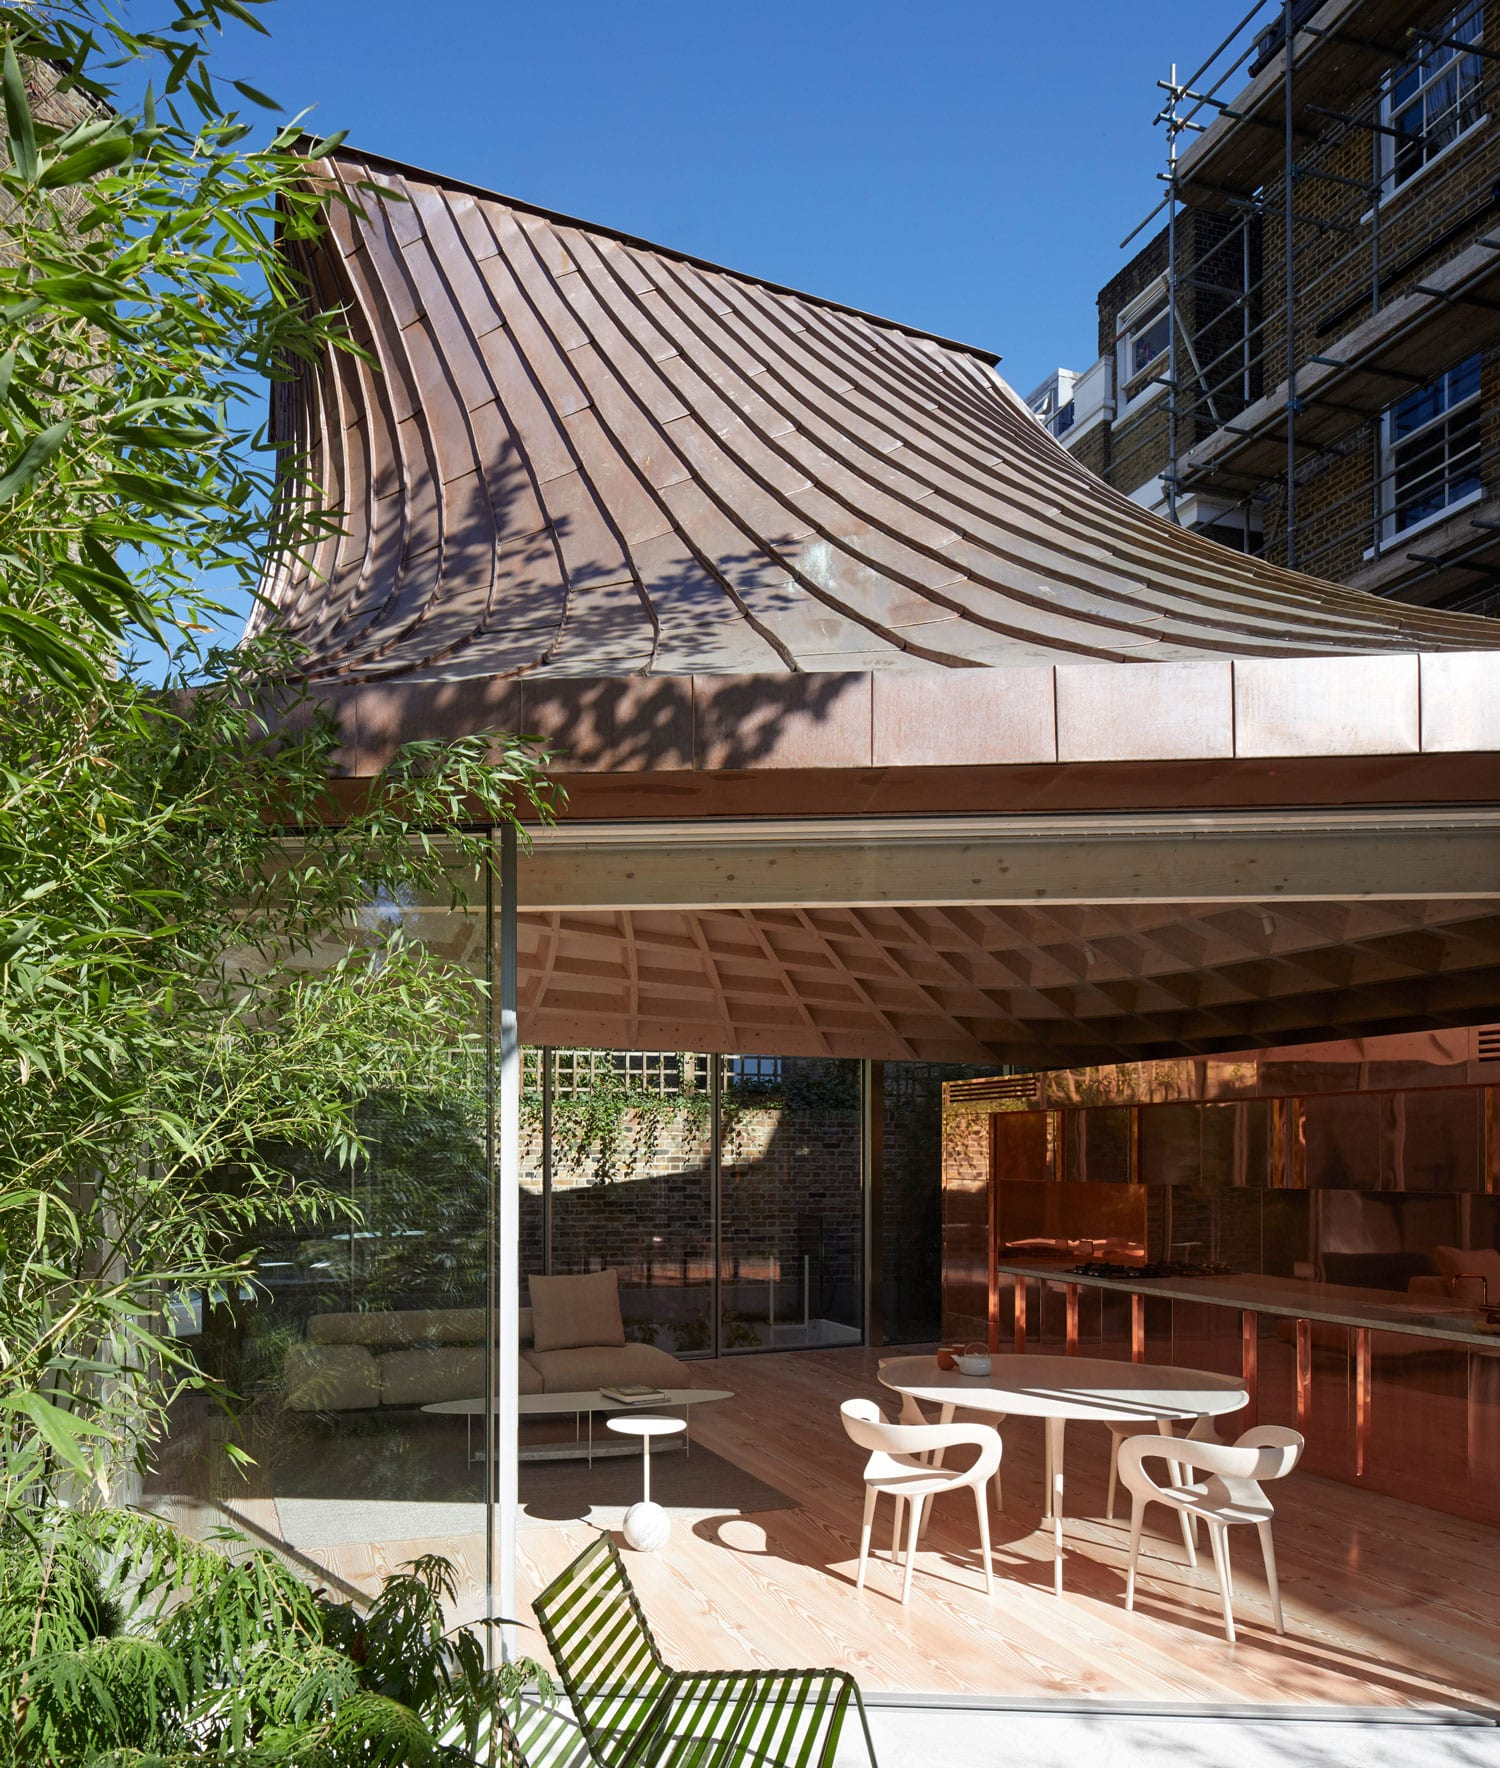 House in a Garden in Notting Hill, London by Gianni Botsford Architects | Yellowtrace